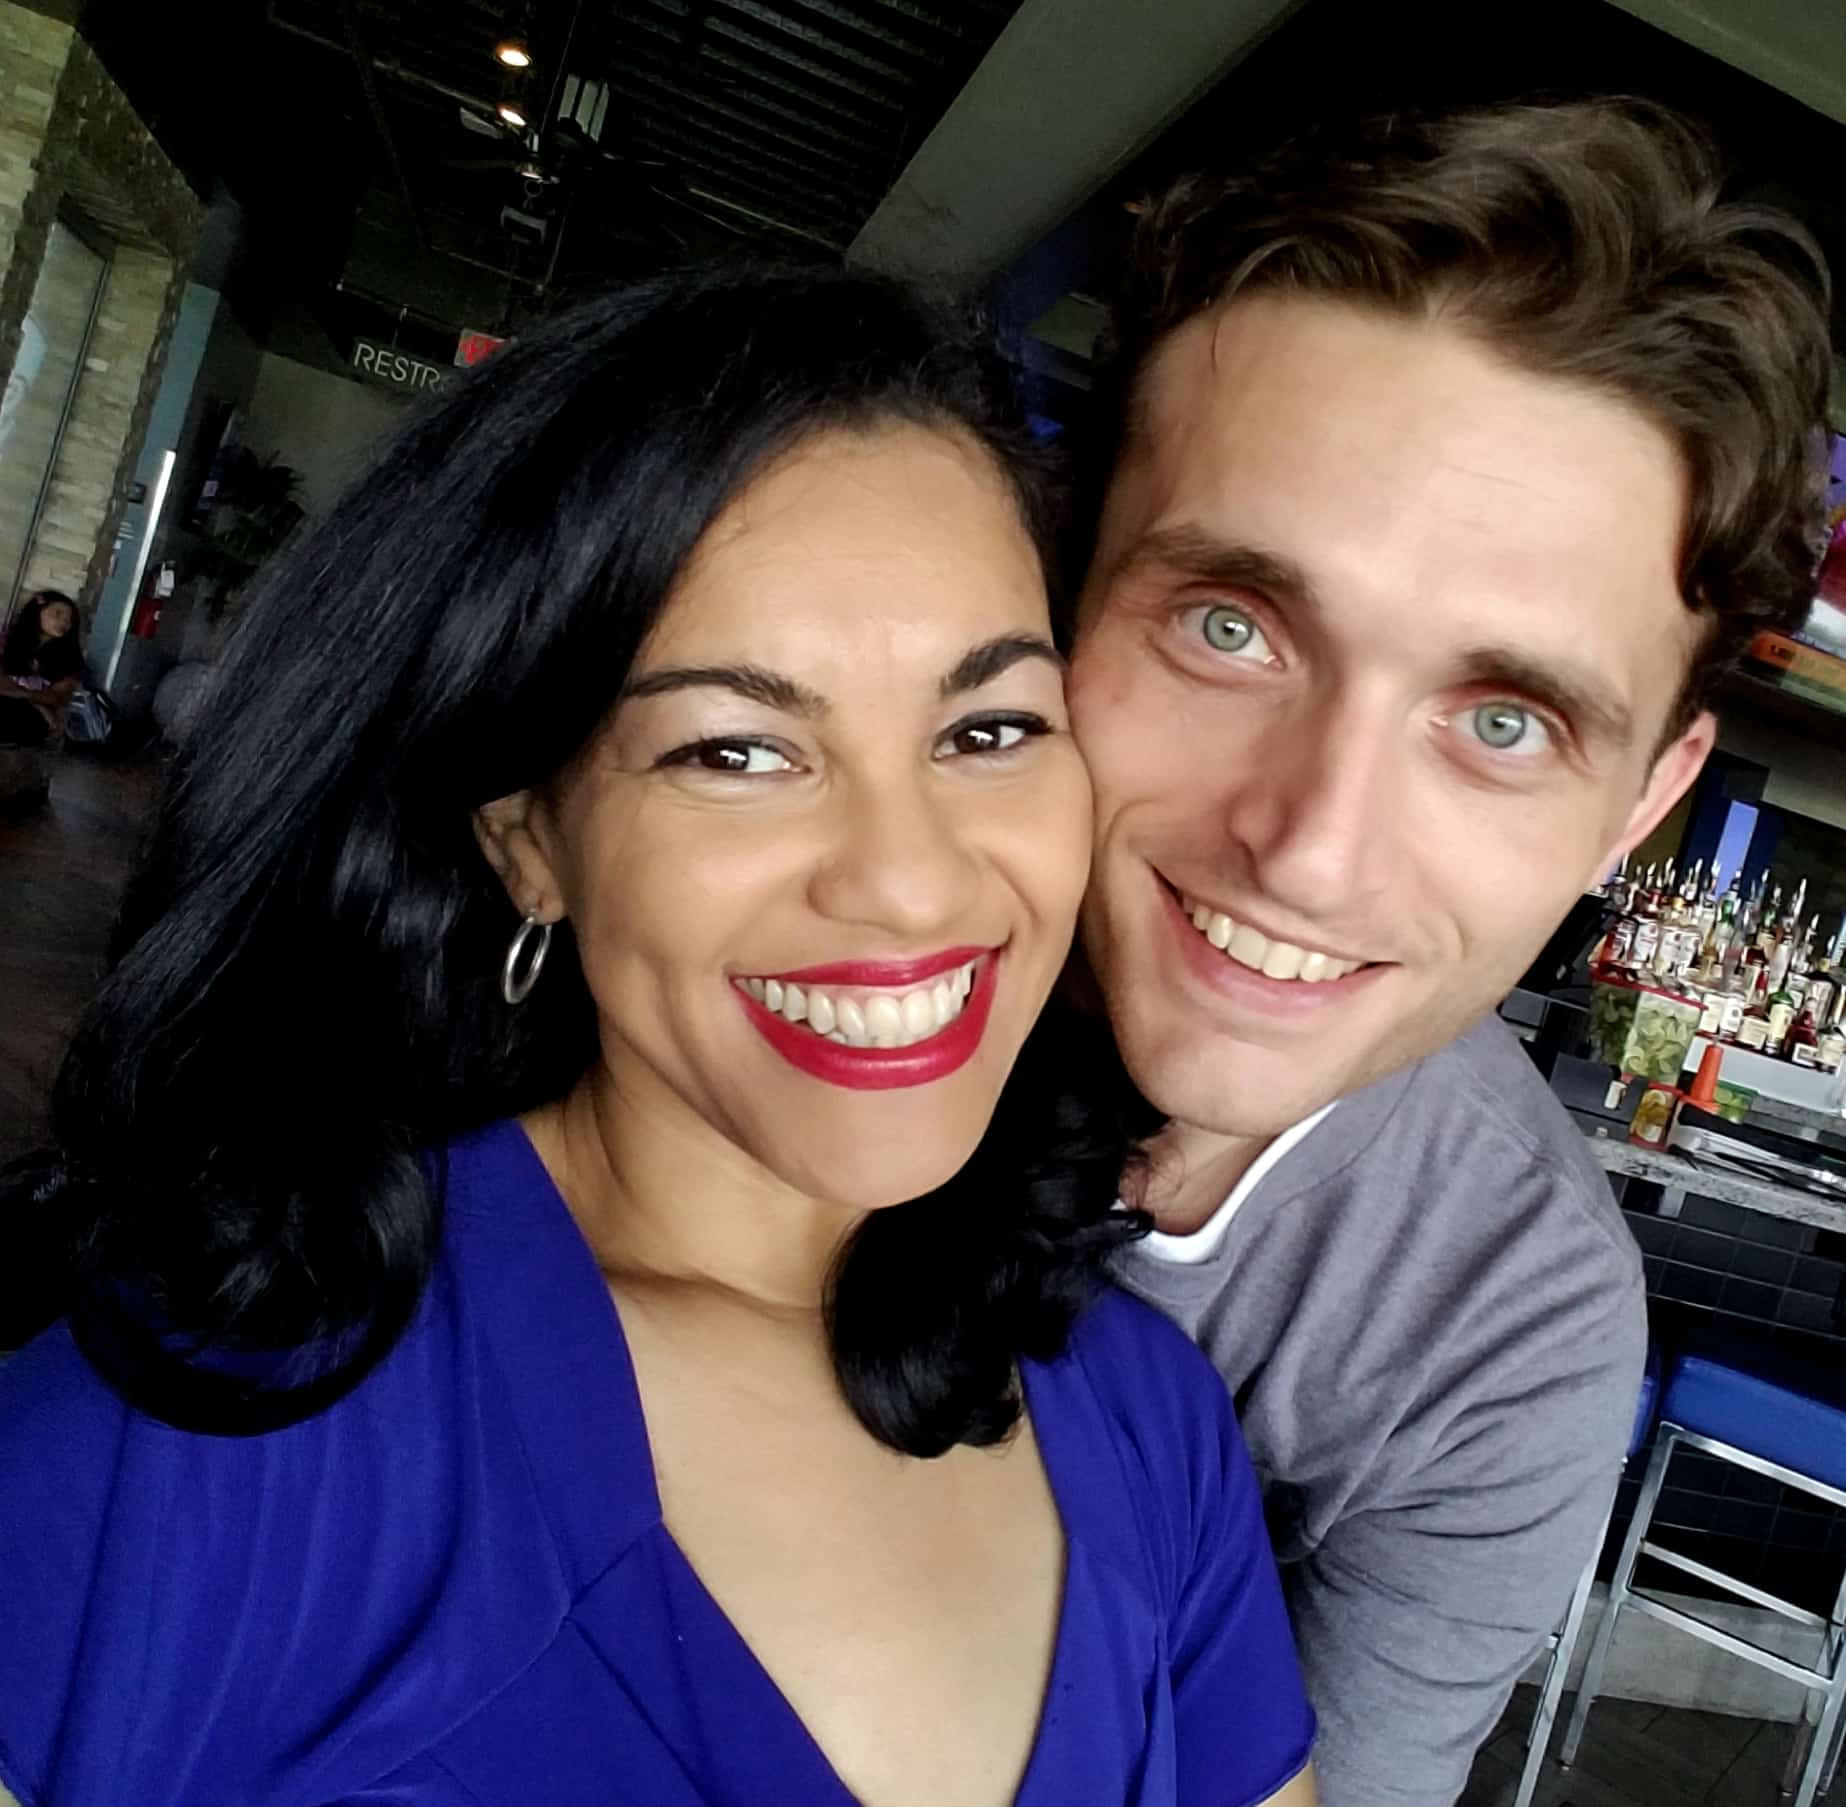 Latina blogger Elayna Fernandez [ known as The Positive MOM ] and husband Taylor Bare at Hispanicize Texas in Houston